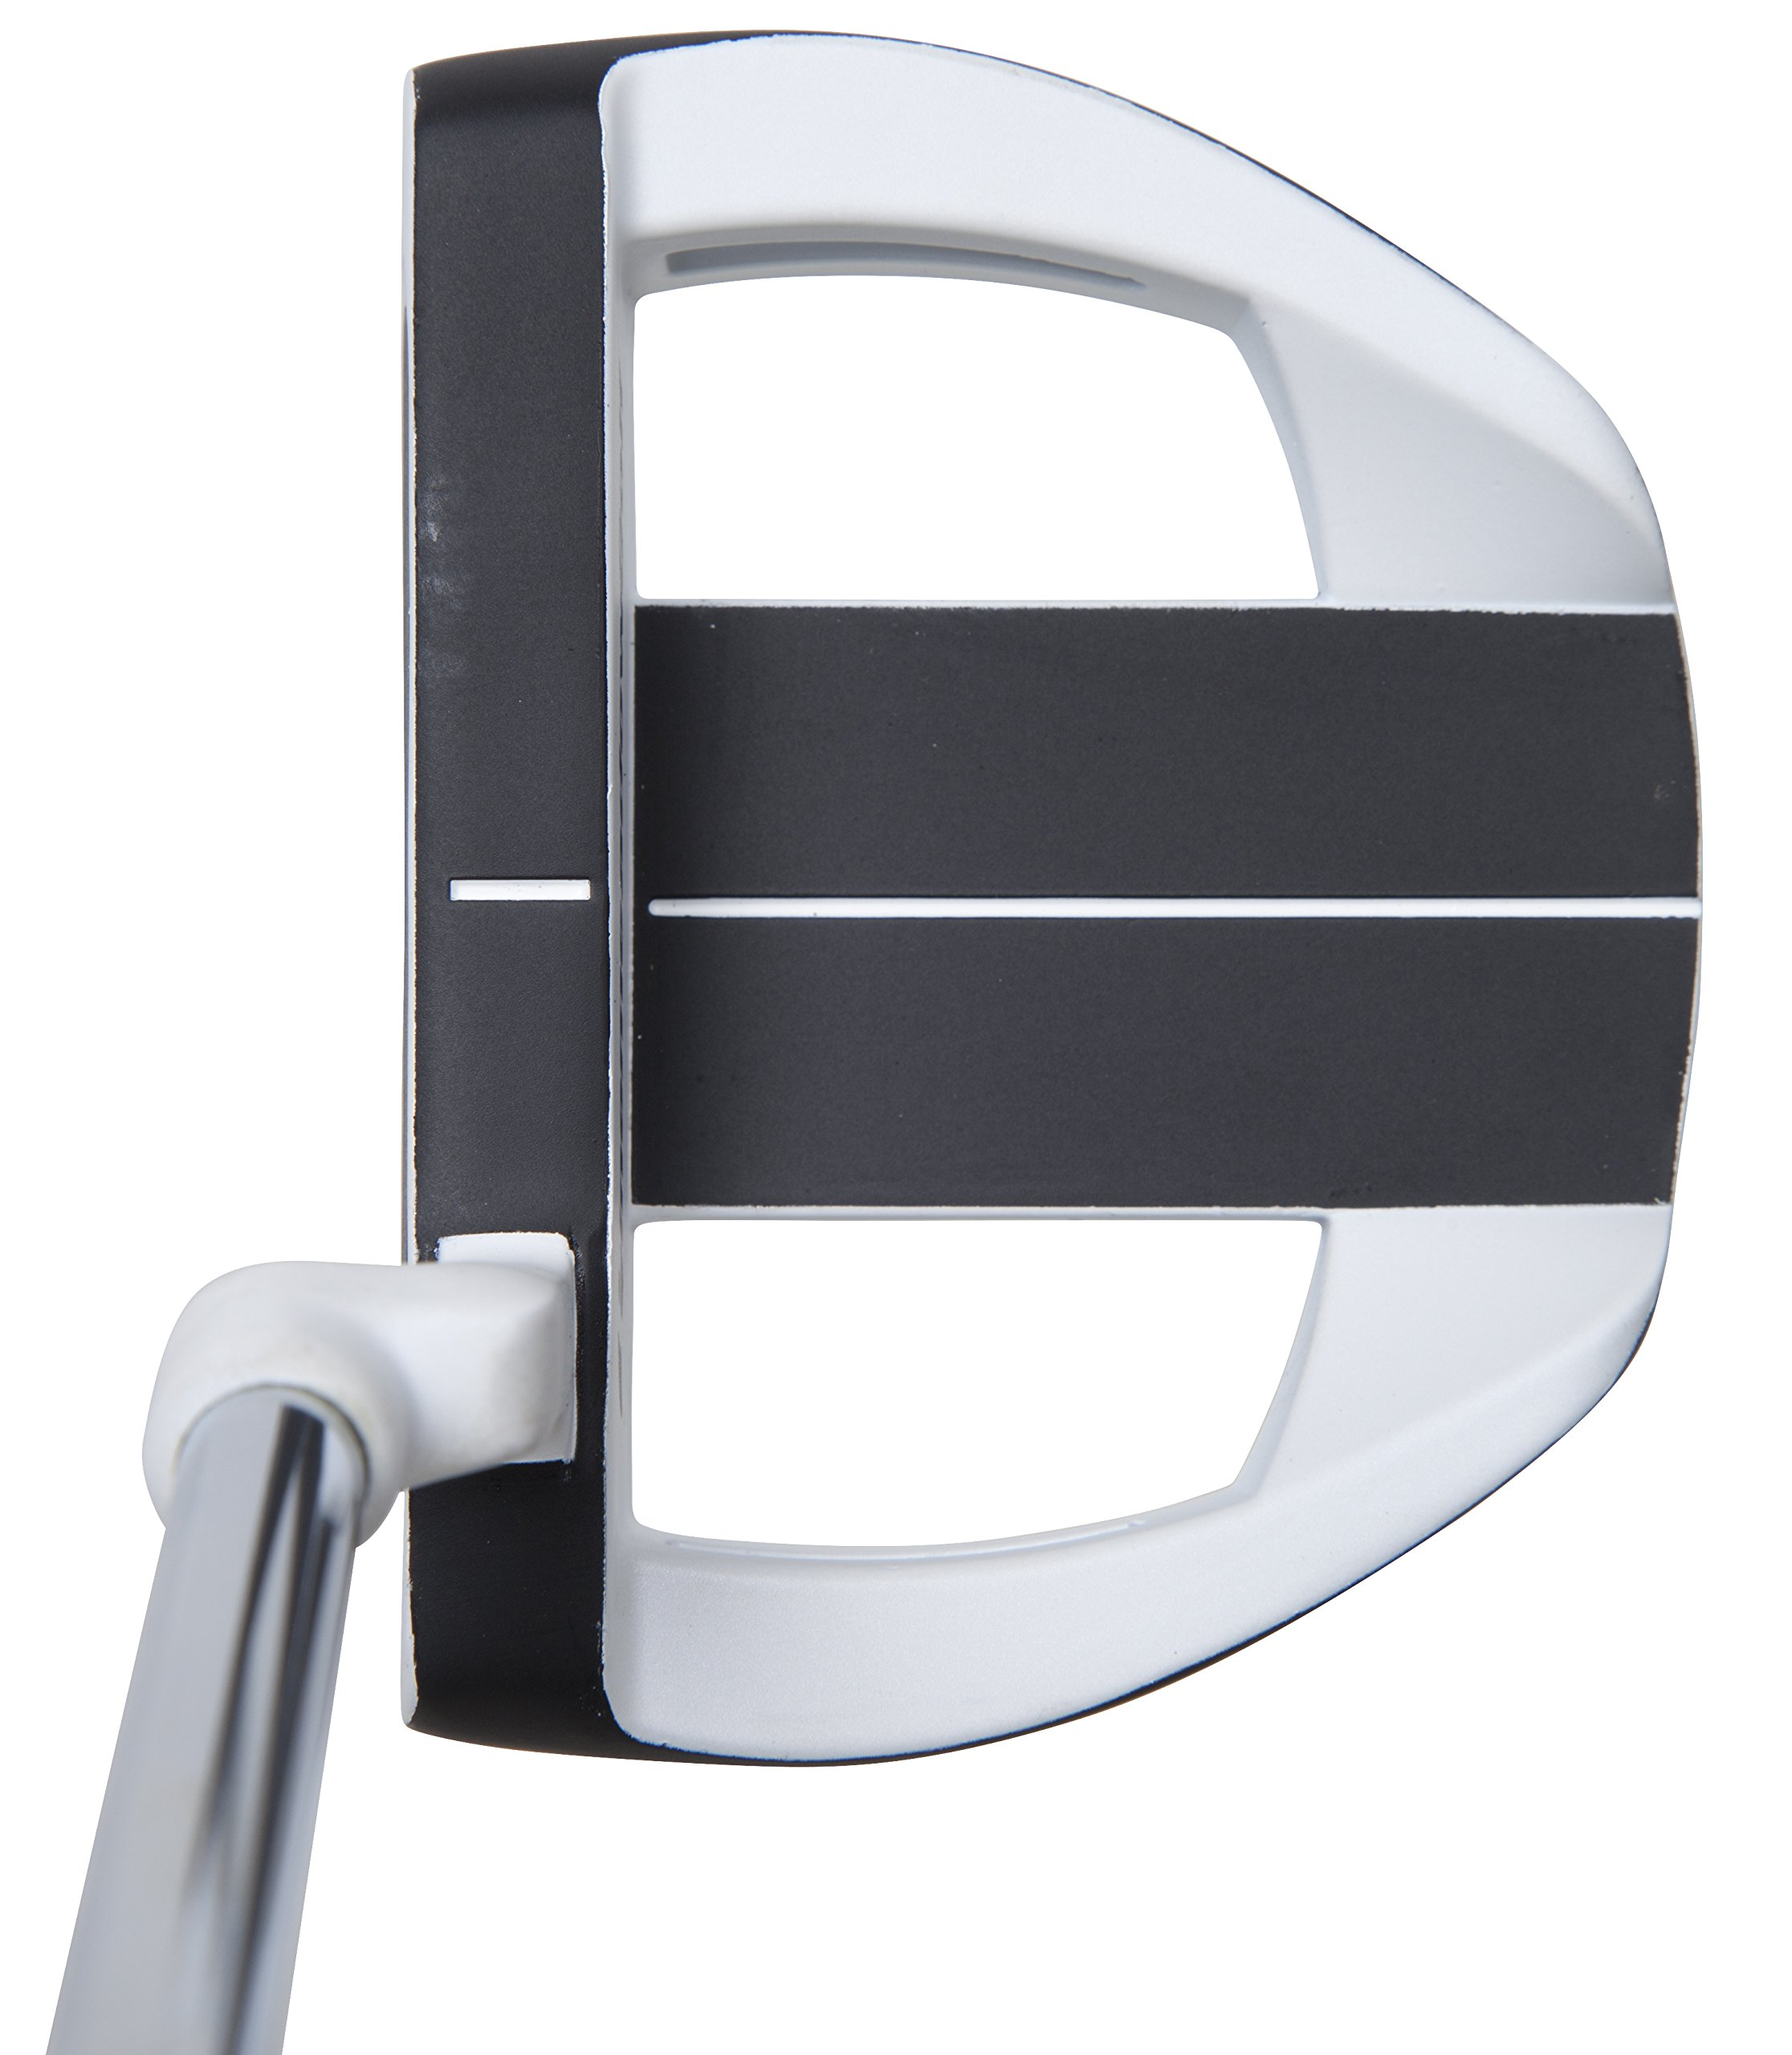 Pinemeadow Golf Site 4 Putter (Men's, Right Hand) by Pinemeadow Golf